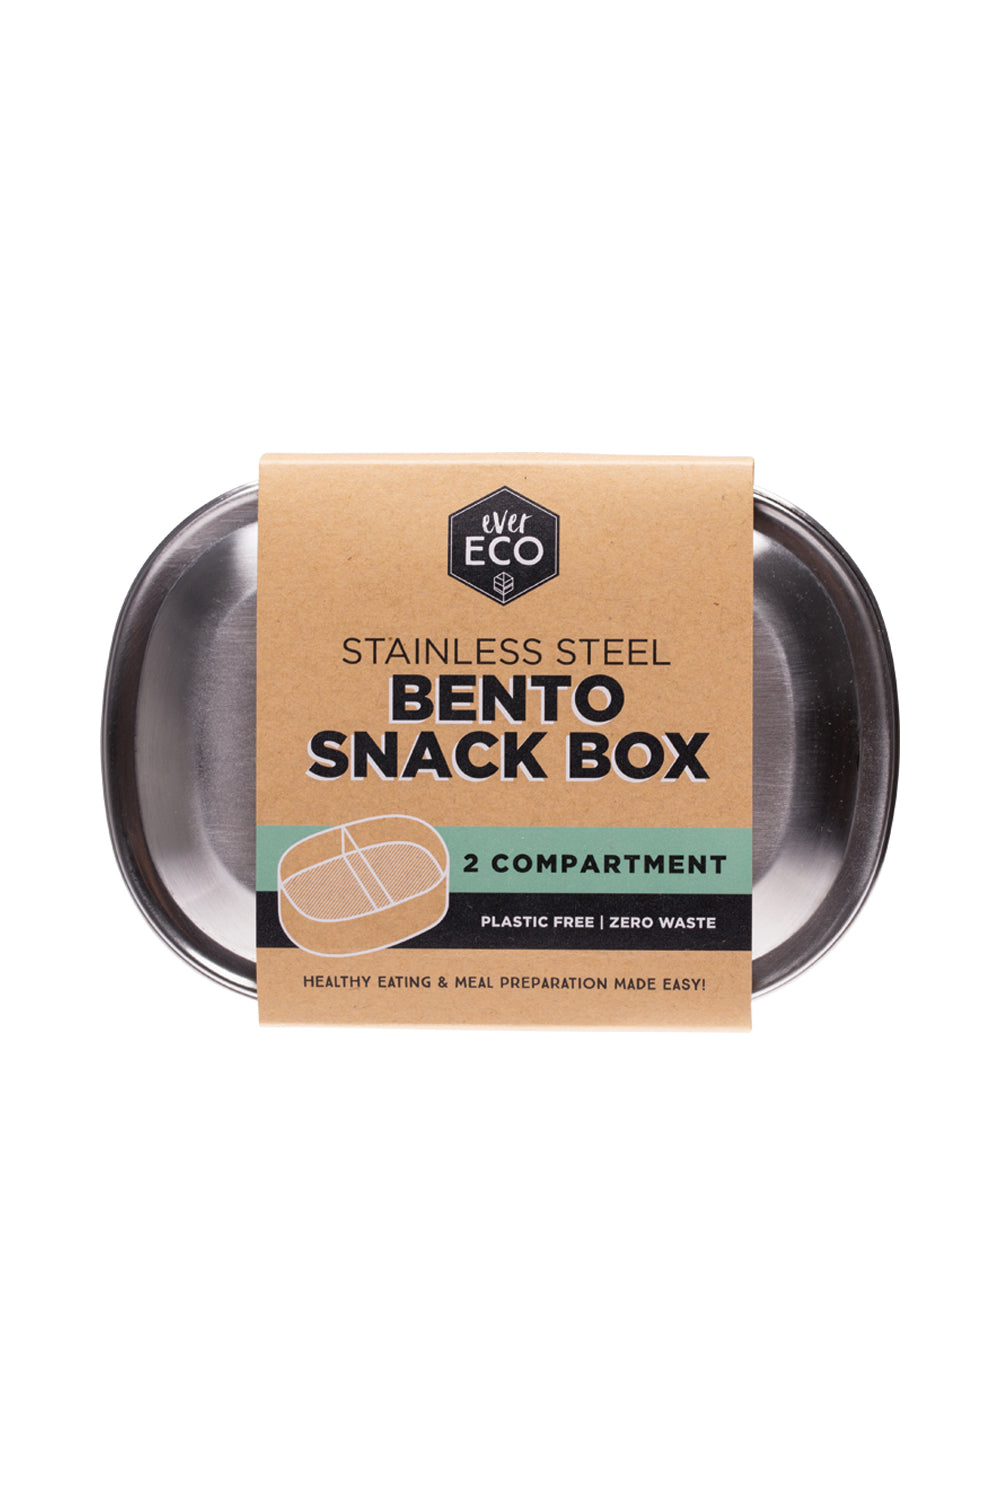 Ever Eco | Ever Eco Bento snack box 2 compartment | Plastic Free Living | Environmentally Friendly Homewares